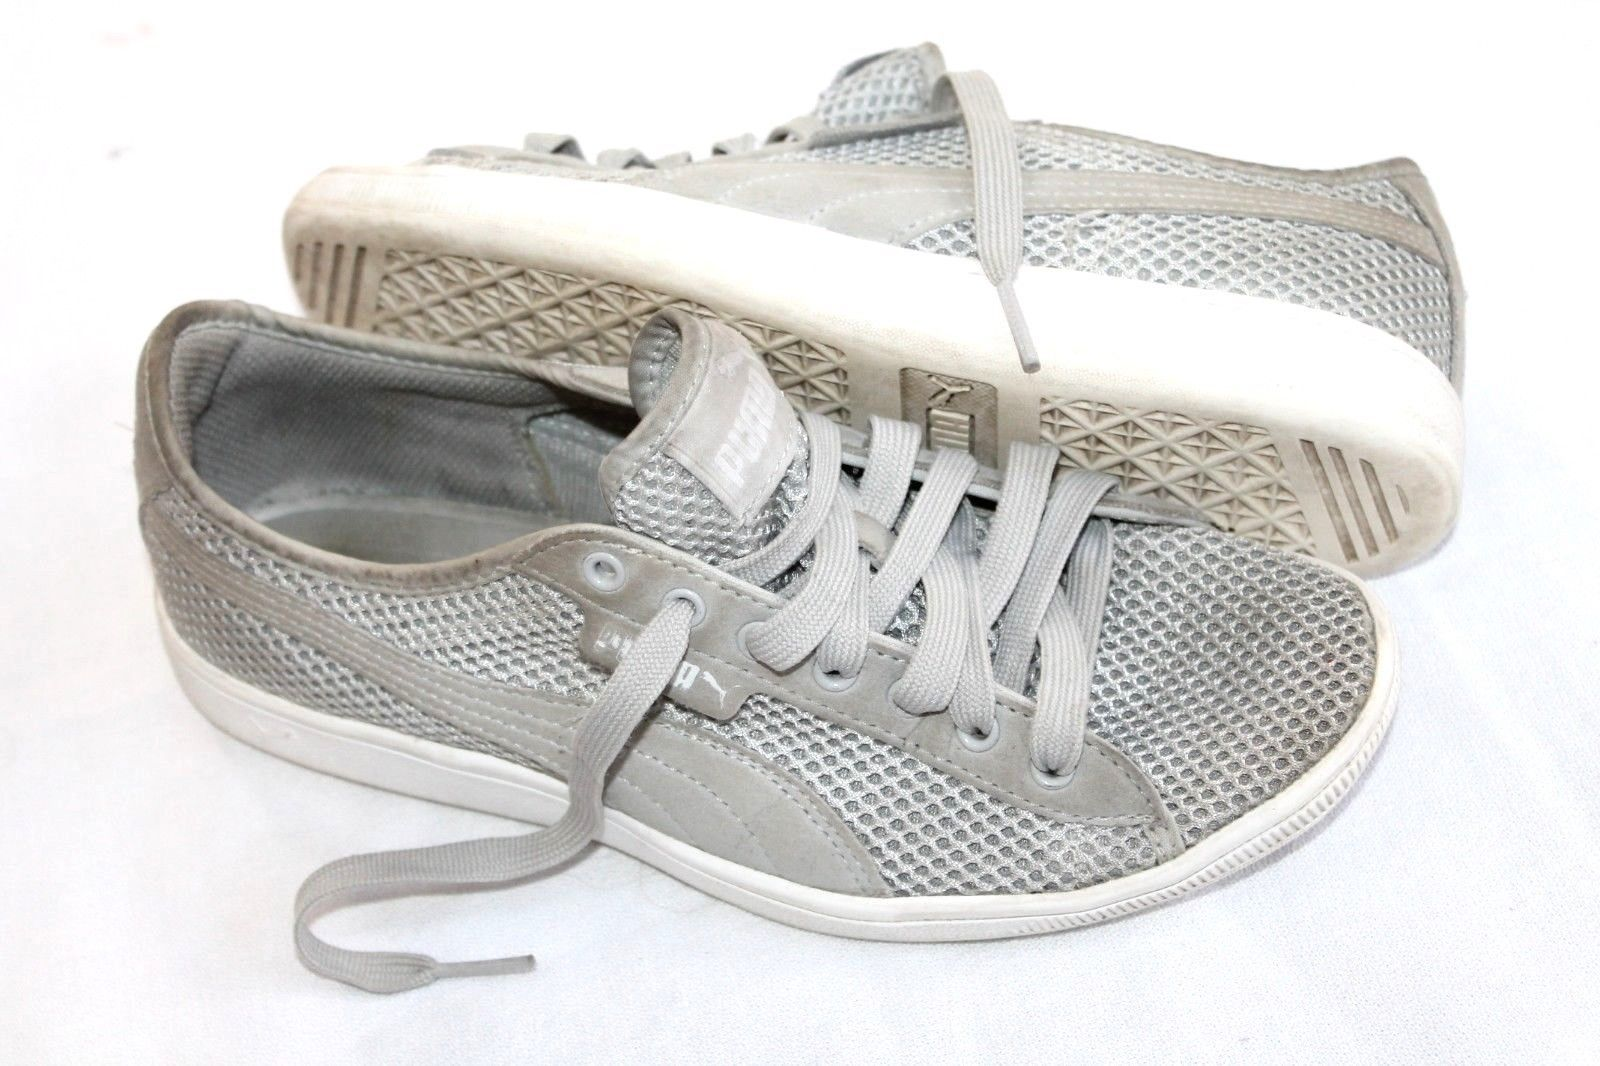 Puma Gray Vikky Mesh Comfort Lace-Up Athletic Shoes  Size 8 Sneakers